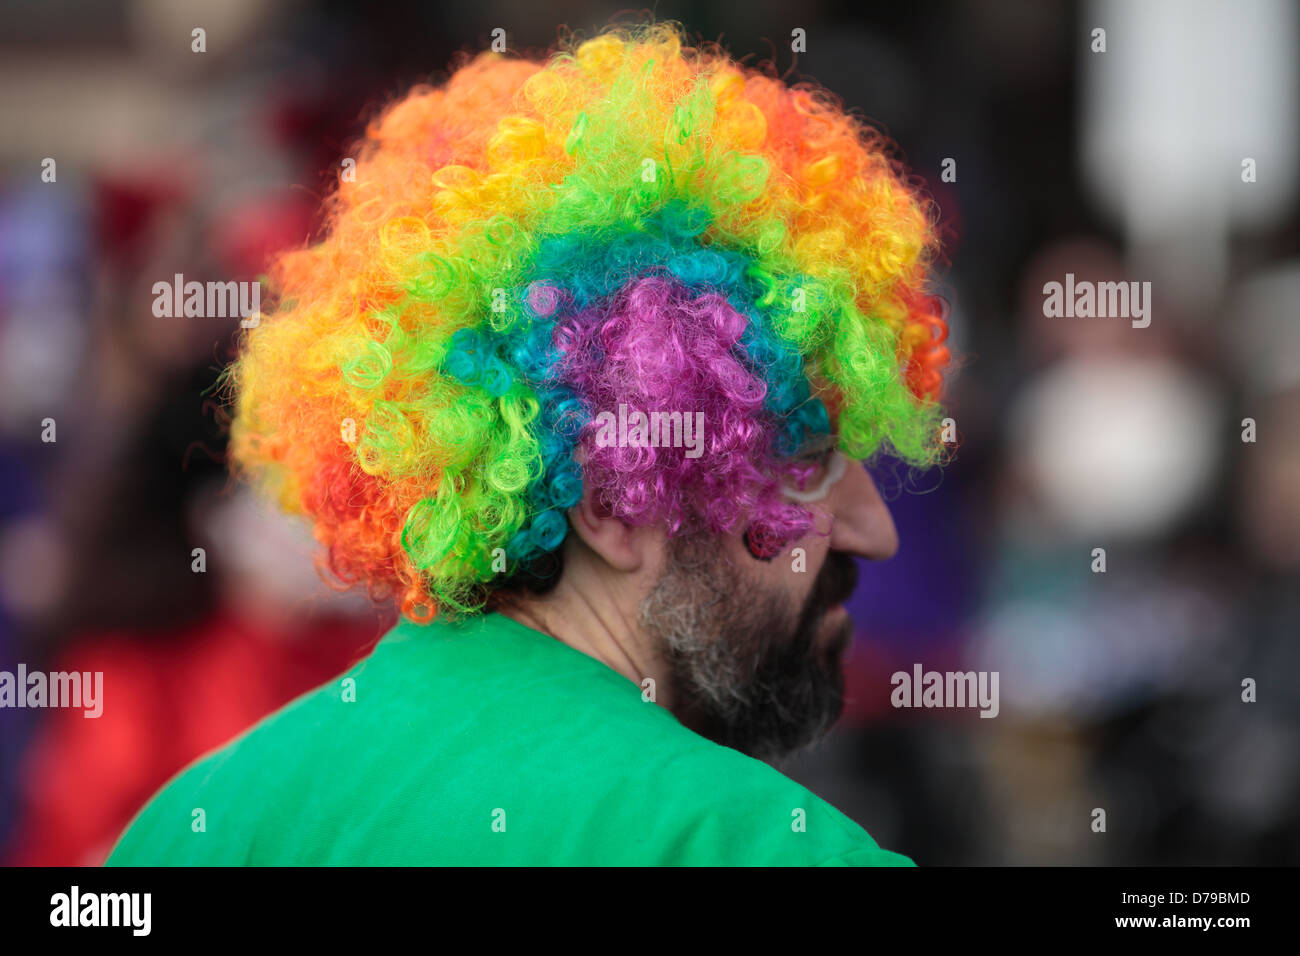 Man wearing a multi-colored wig. - Stock Image